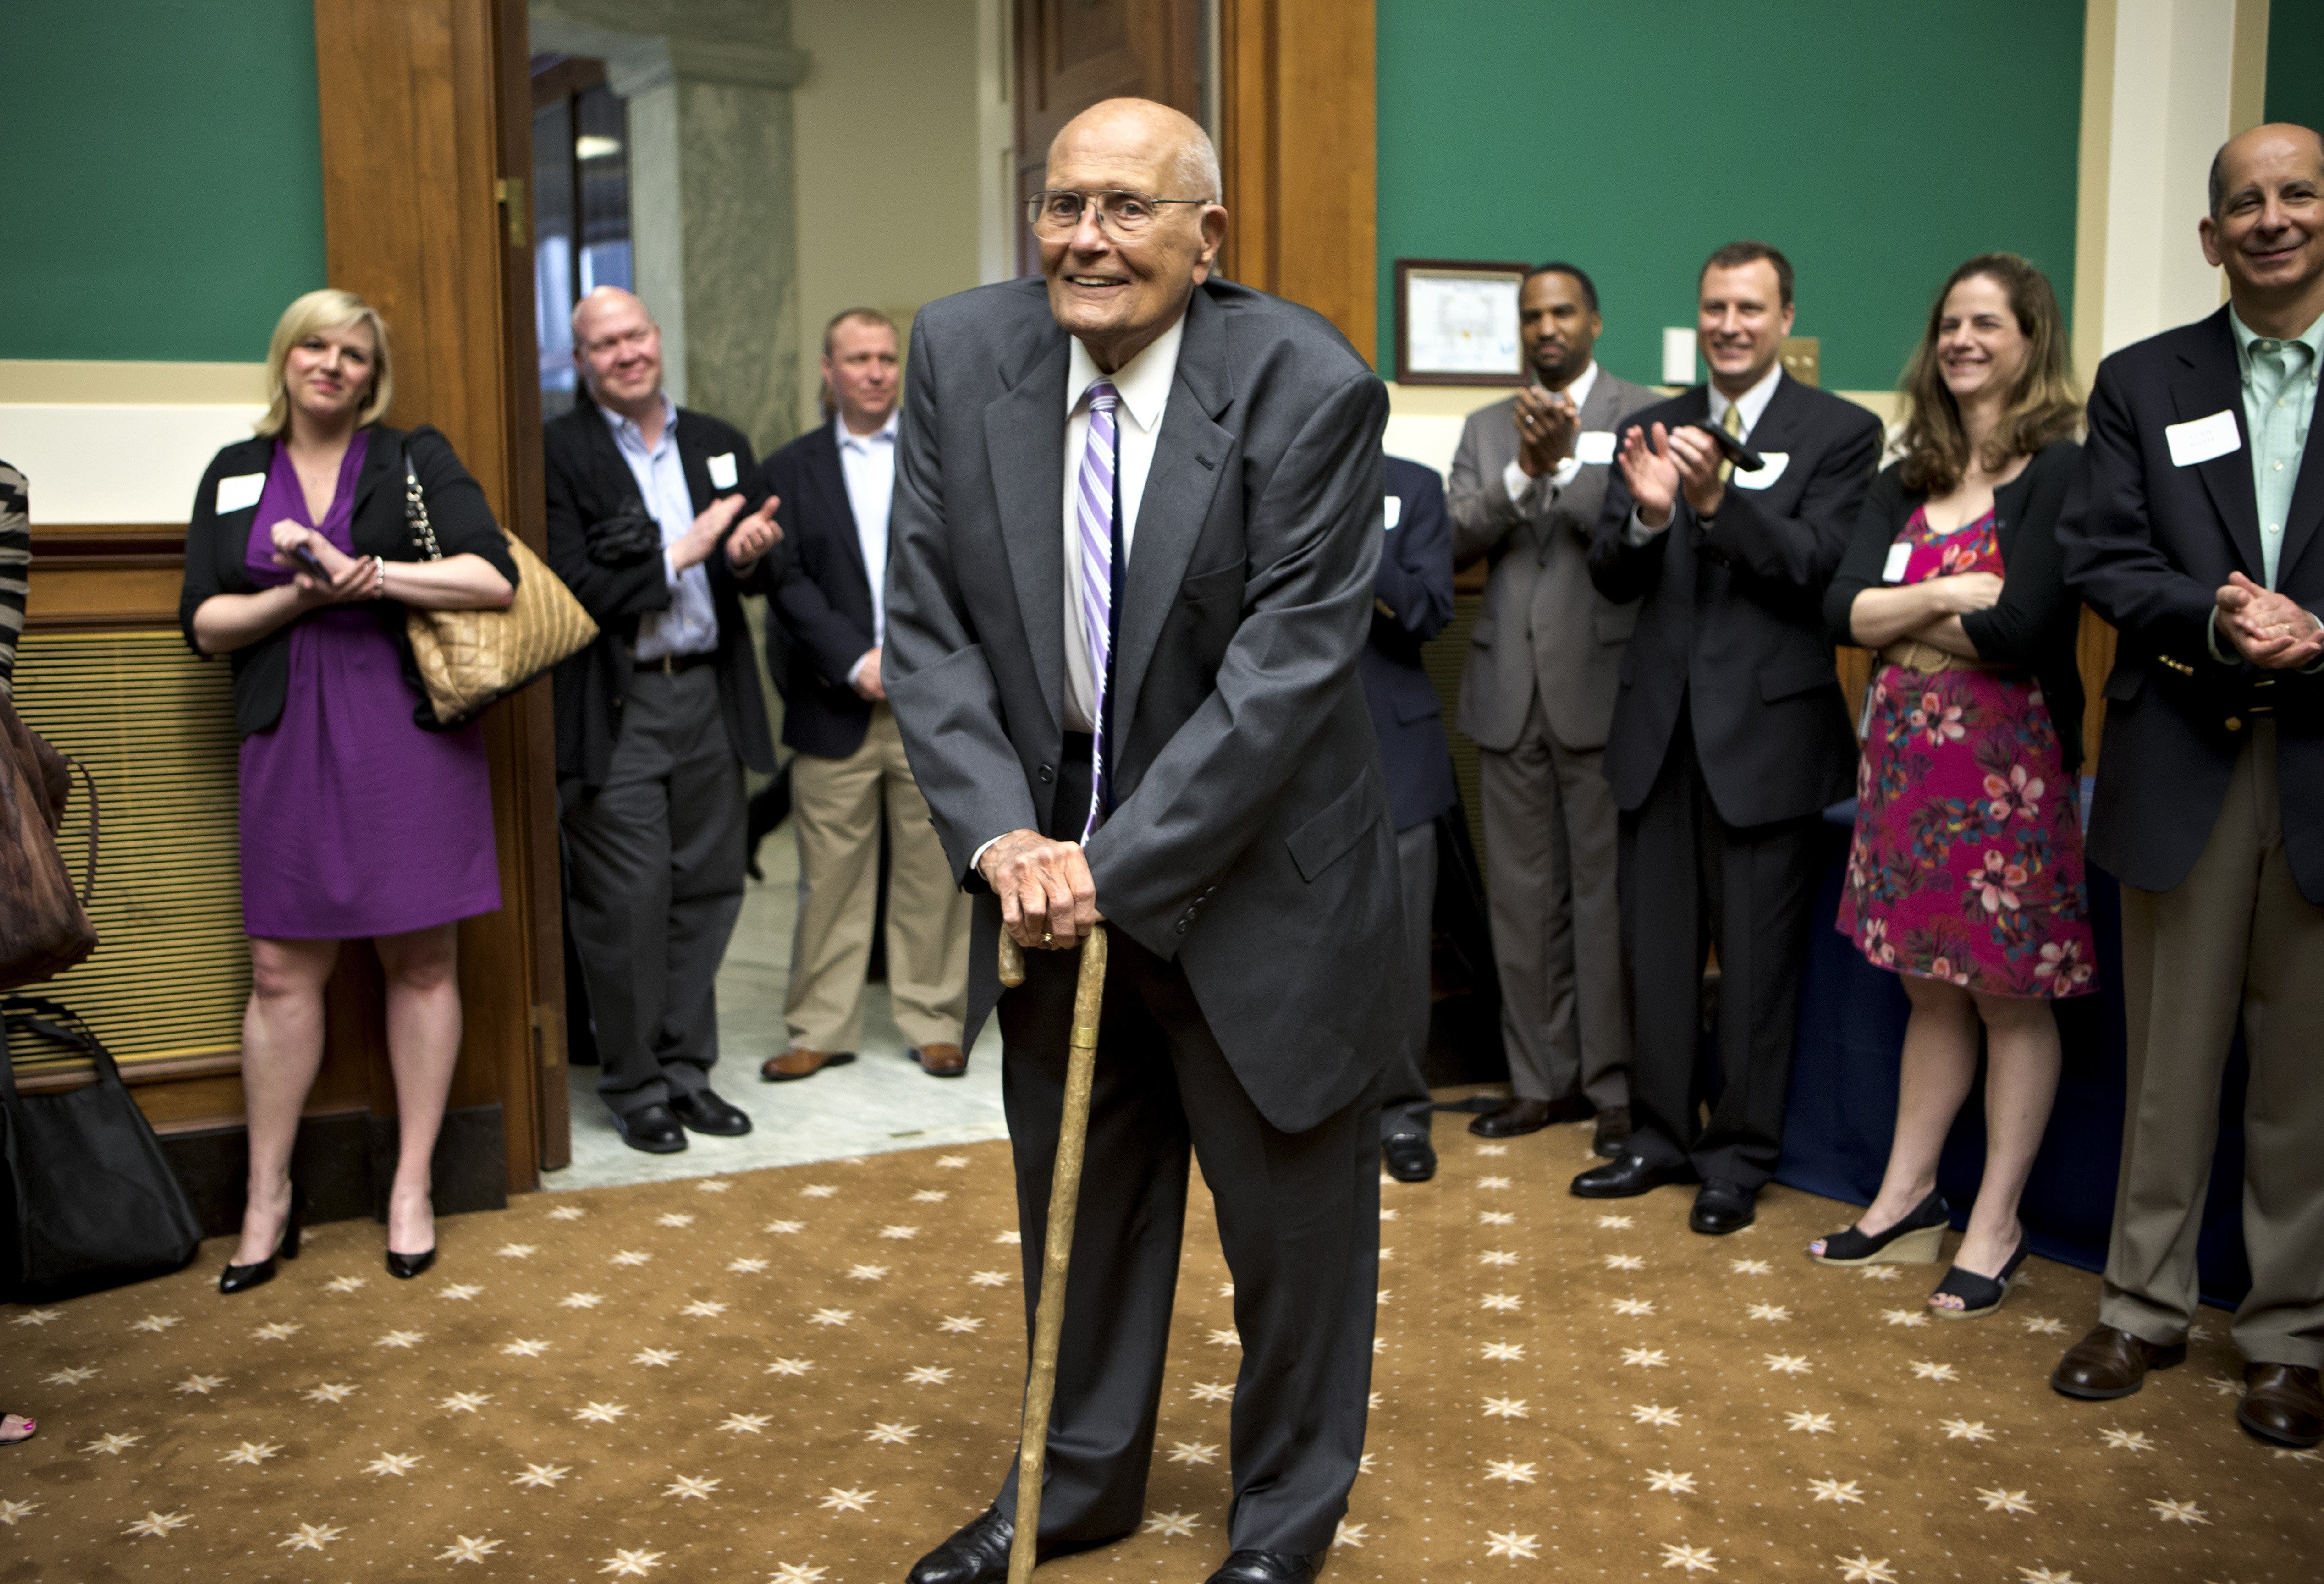 John Dingell recalled as icon: Here's what colleagues, friends are saying